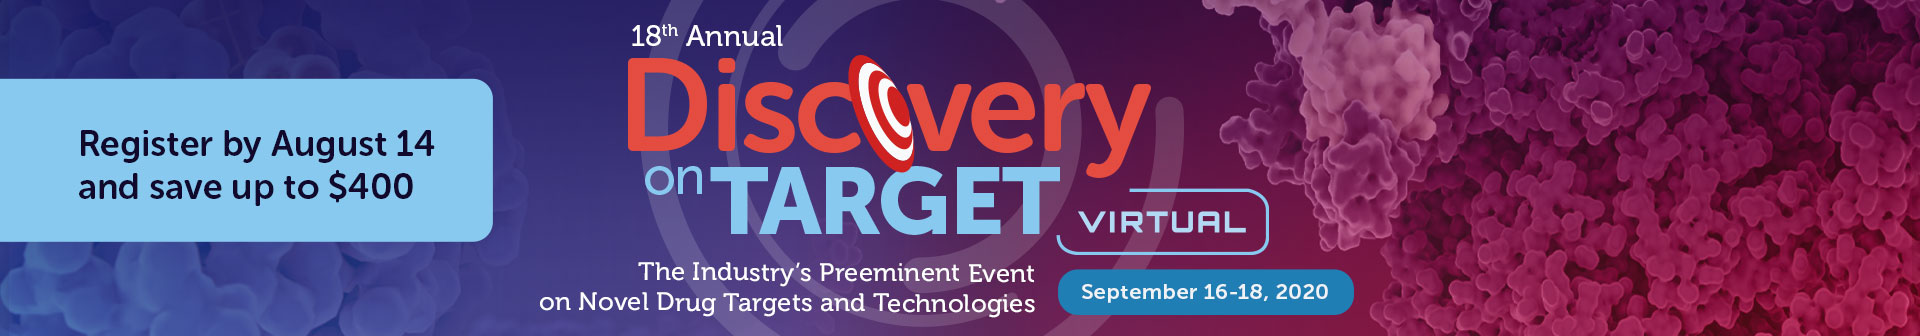 Discovery on Target_8-14-20